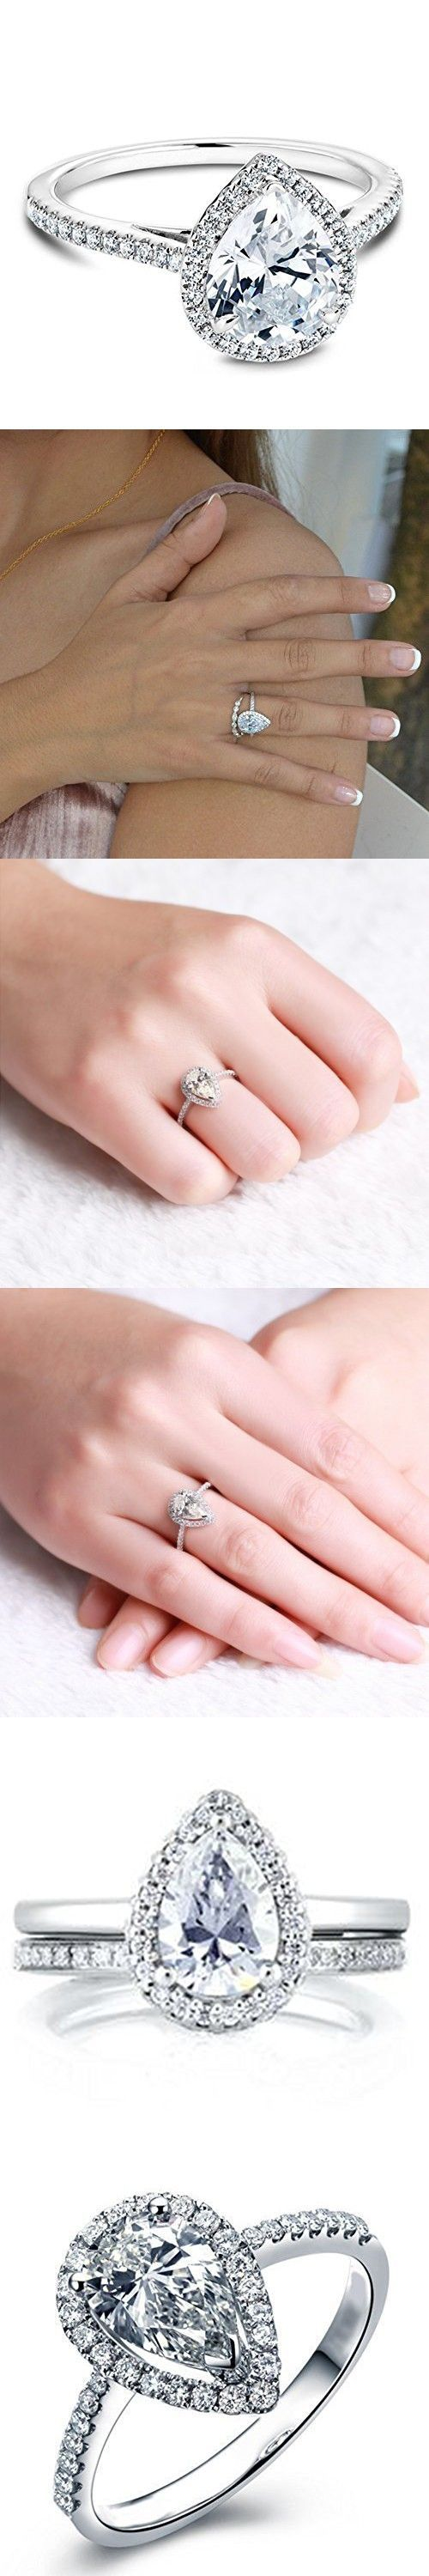 159 best solitaire engagement rings cushion images on Pinterest ...